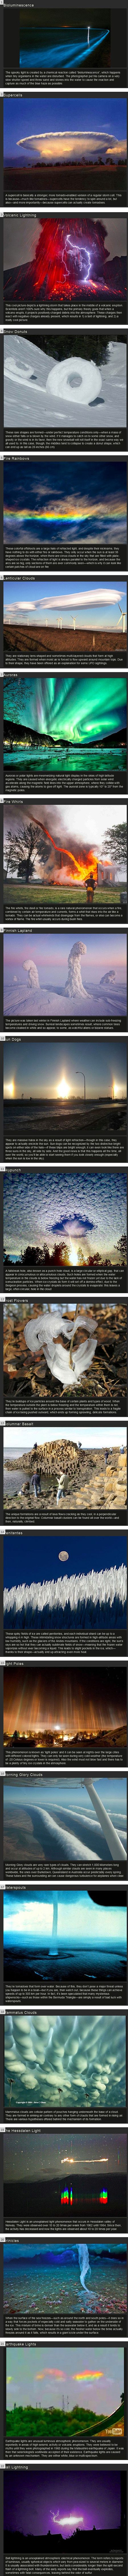 There are some really cool things in nature, here are 22 of them explained.